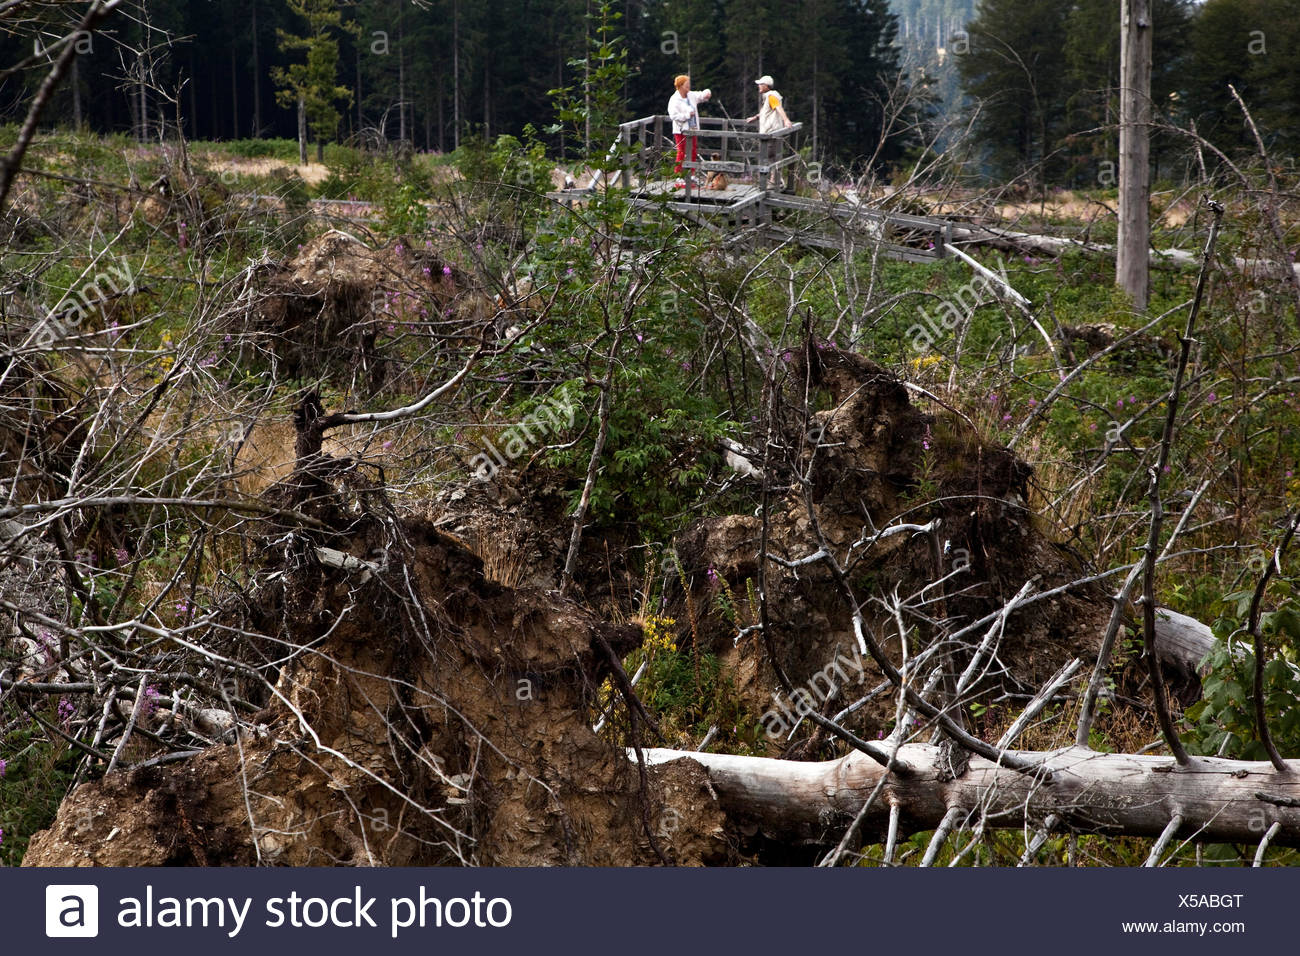 two people looking at storm losses at Kyrill path, Germany, North Rhine-Westphalia, Sauerland, Schmallenberg - Stock Image